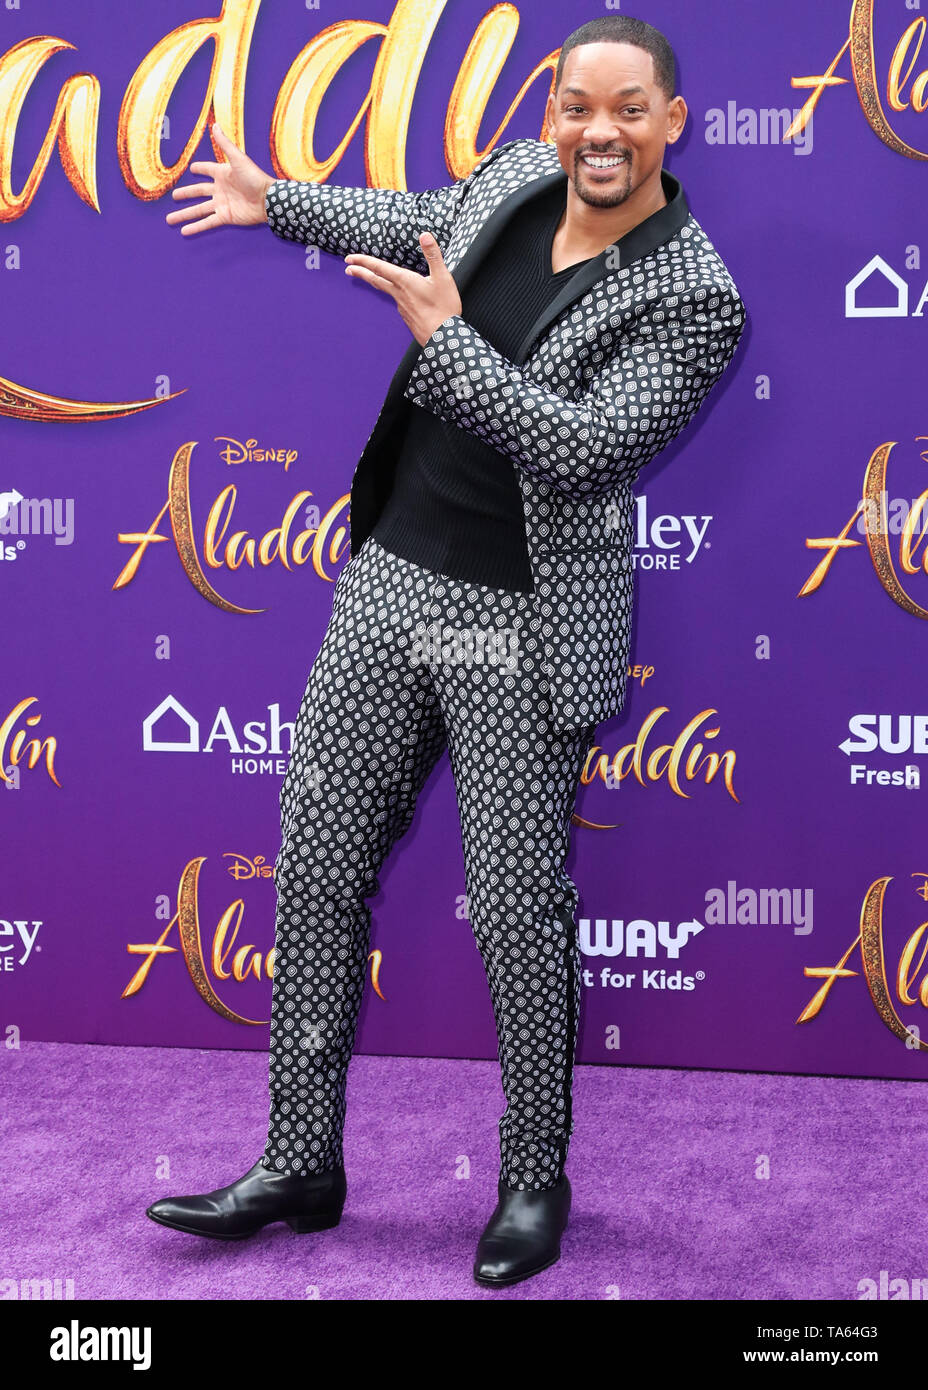 Hollywood, United States. 21st May, 2019. HOLLYWOOD, LOS ANGELES, CALIFORNIA, USA - MAY 21: Actor Will Smith arrives at the World Premiere Of Disney's 'Aladdin' held at the El Capitan Theatre on May 21, 2019 in Hollywood, Los Angeles, California, United States. (Photo by Xavier Collin/Image Press Agency) Credit: Image Press Agency/Alamy Live News - Stock Image